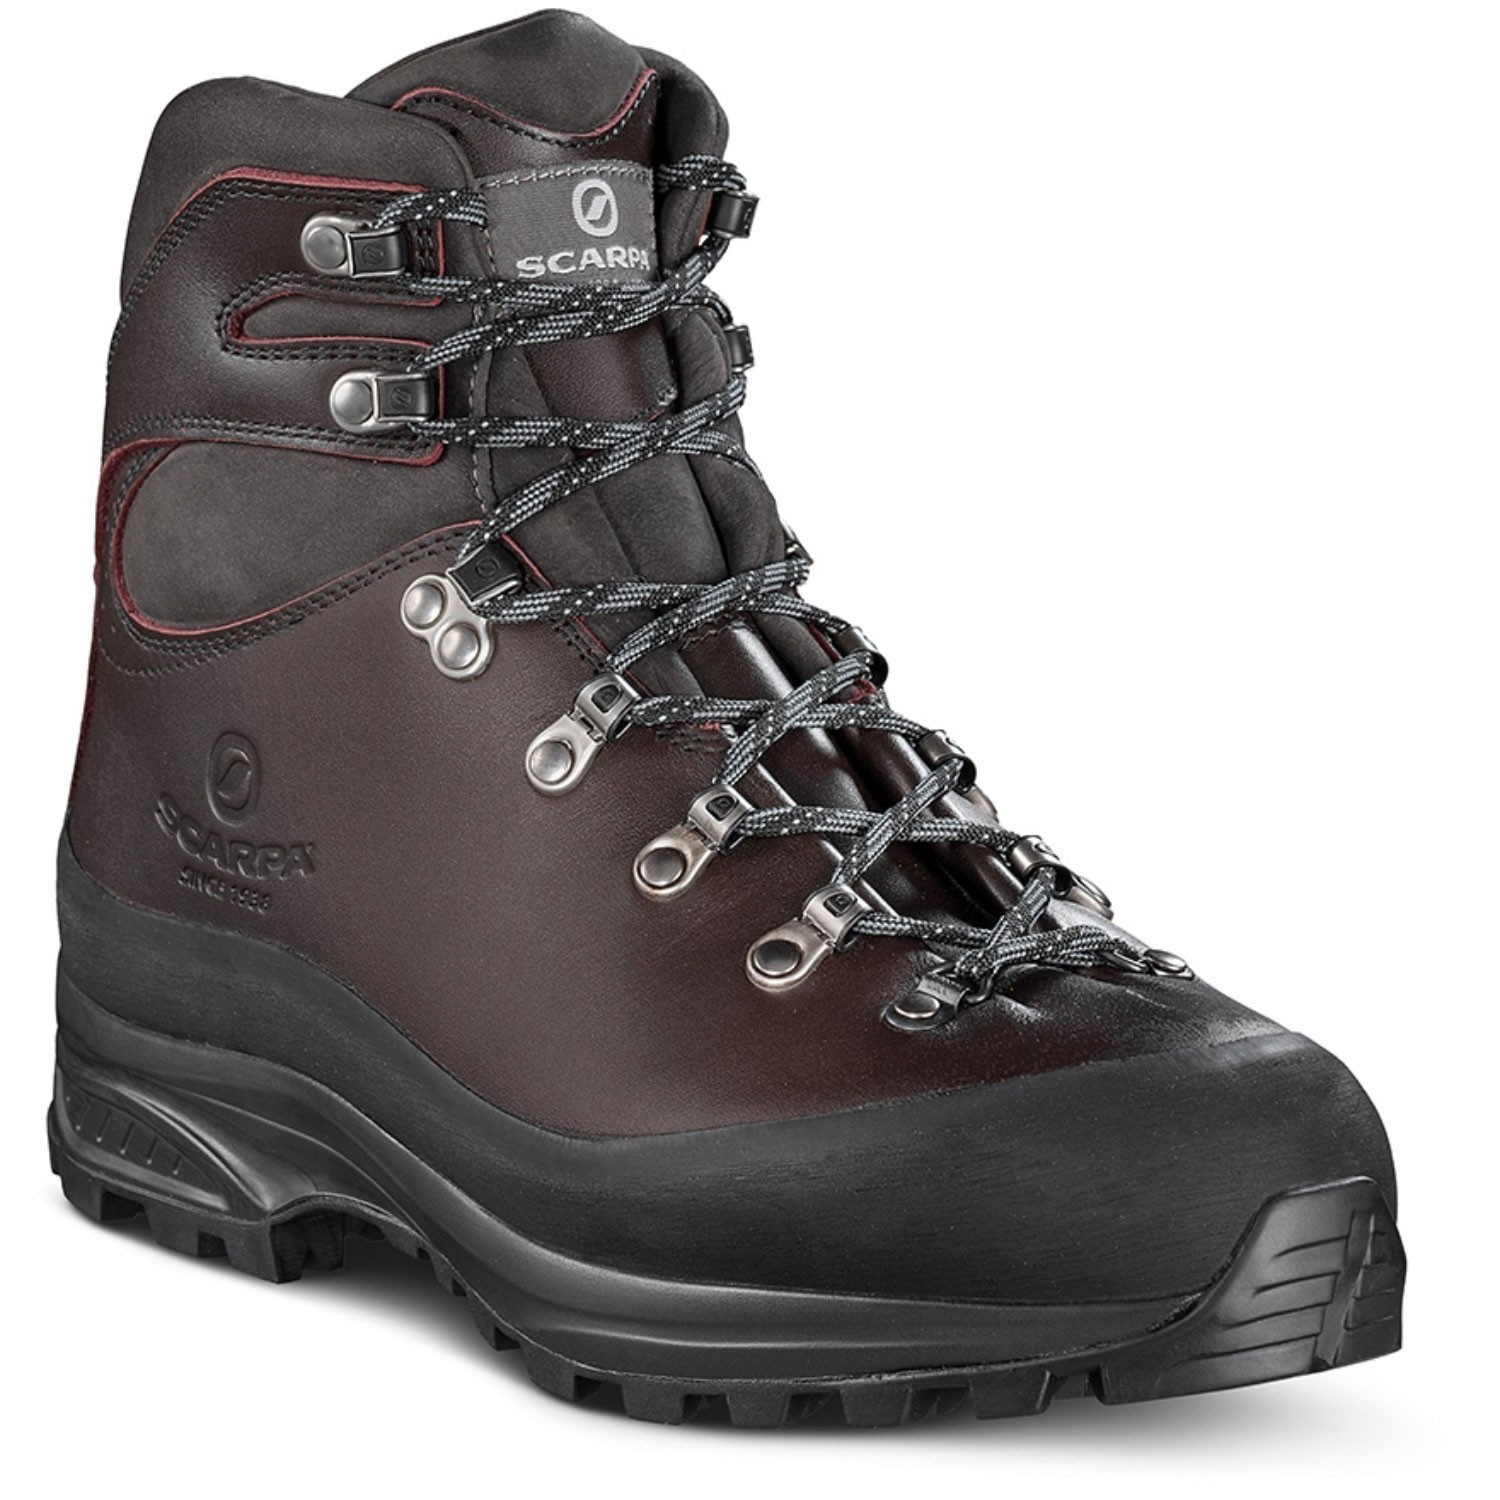 SL Activ Walking Boot